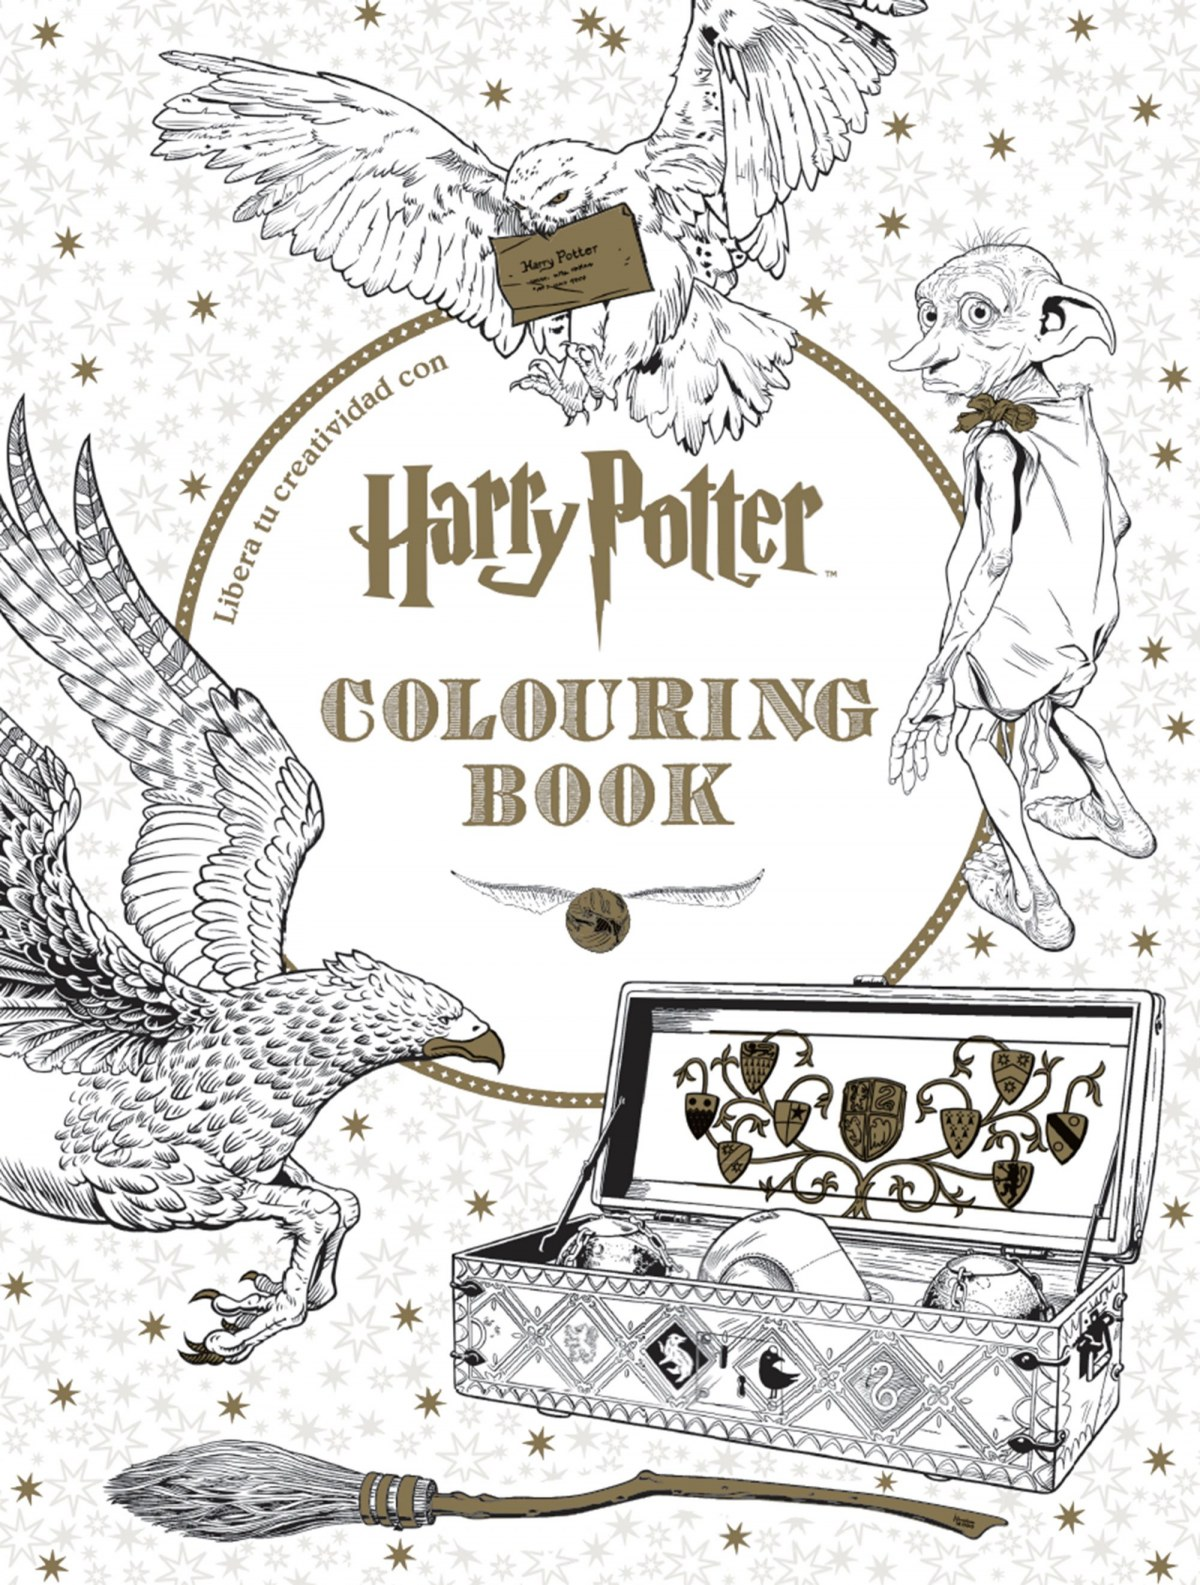 Harry Potter coloring book 9788448022129